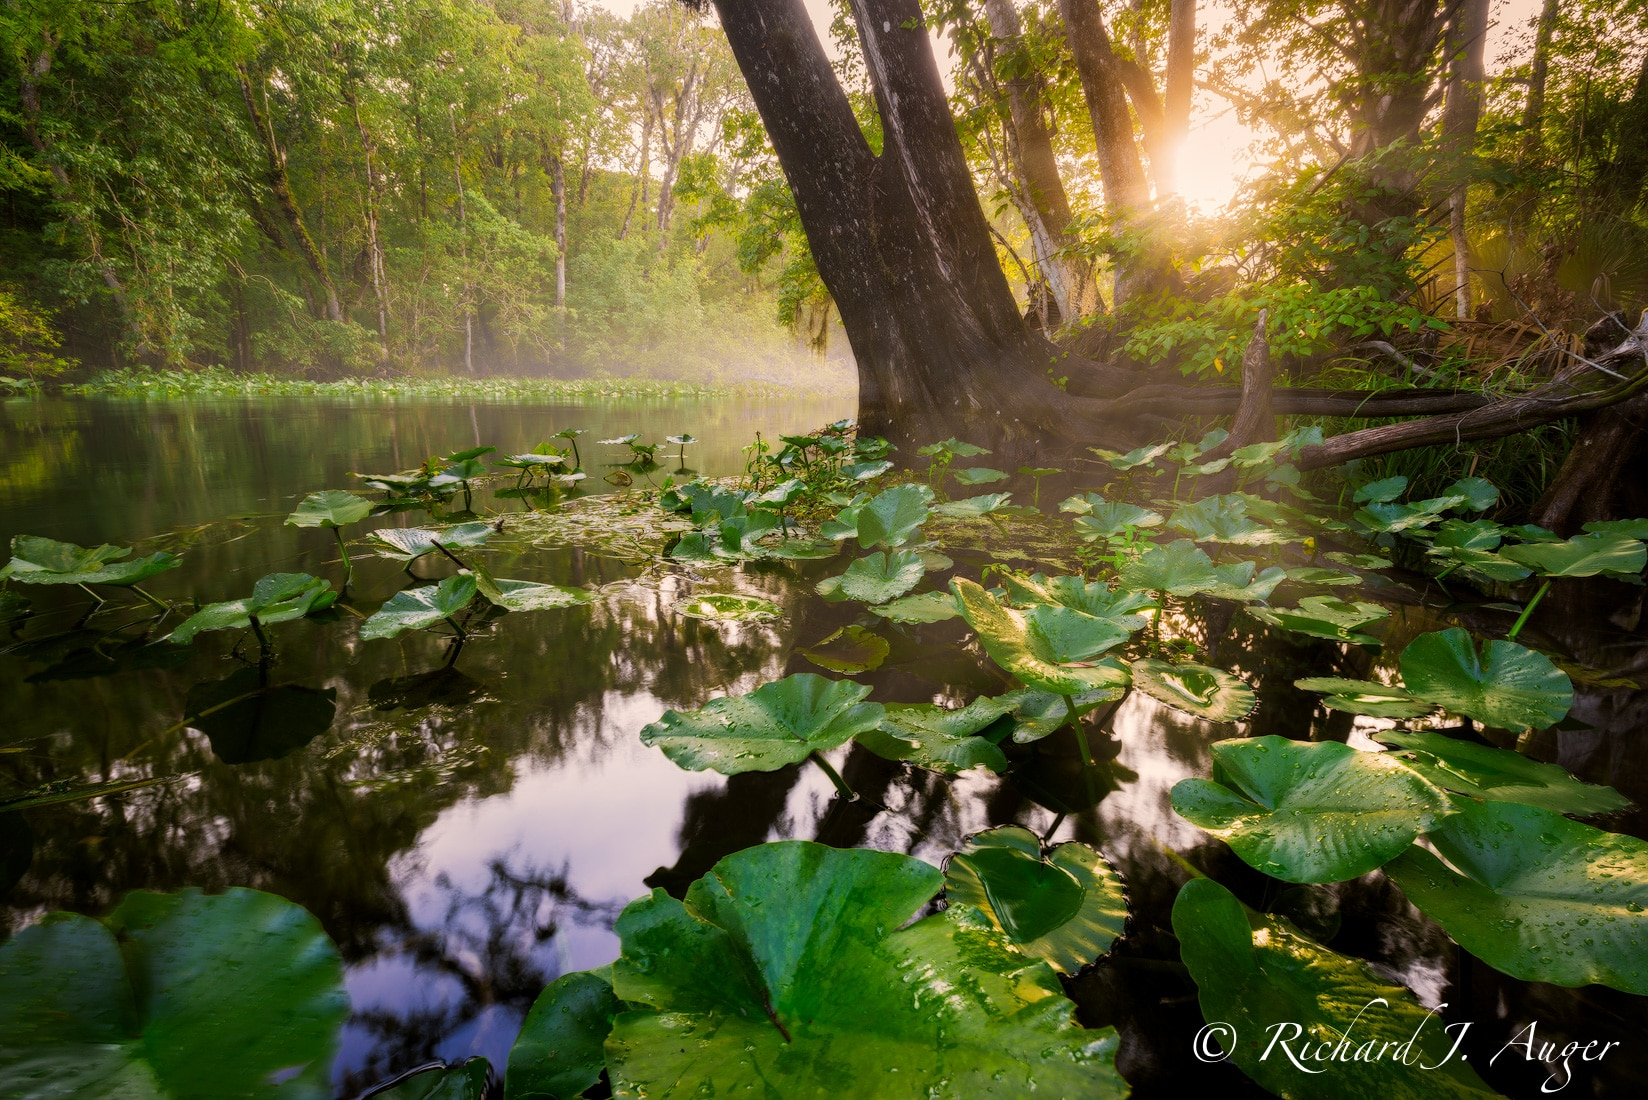 Silver River, Ocala National Forest, Nature, Lillie Pads, Sunburst